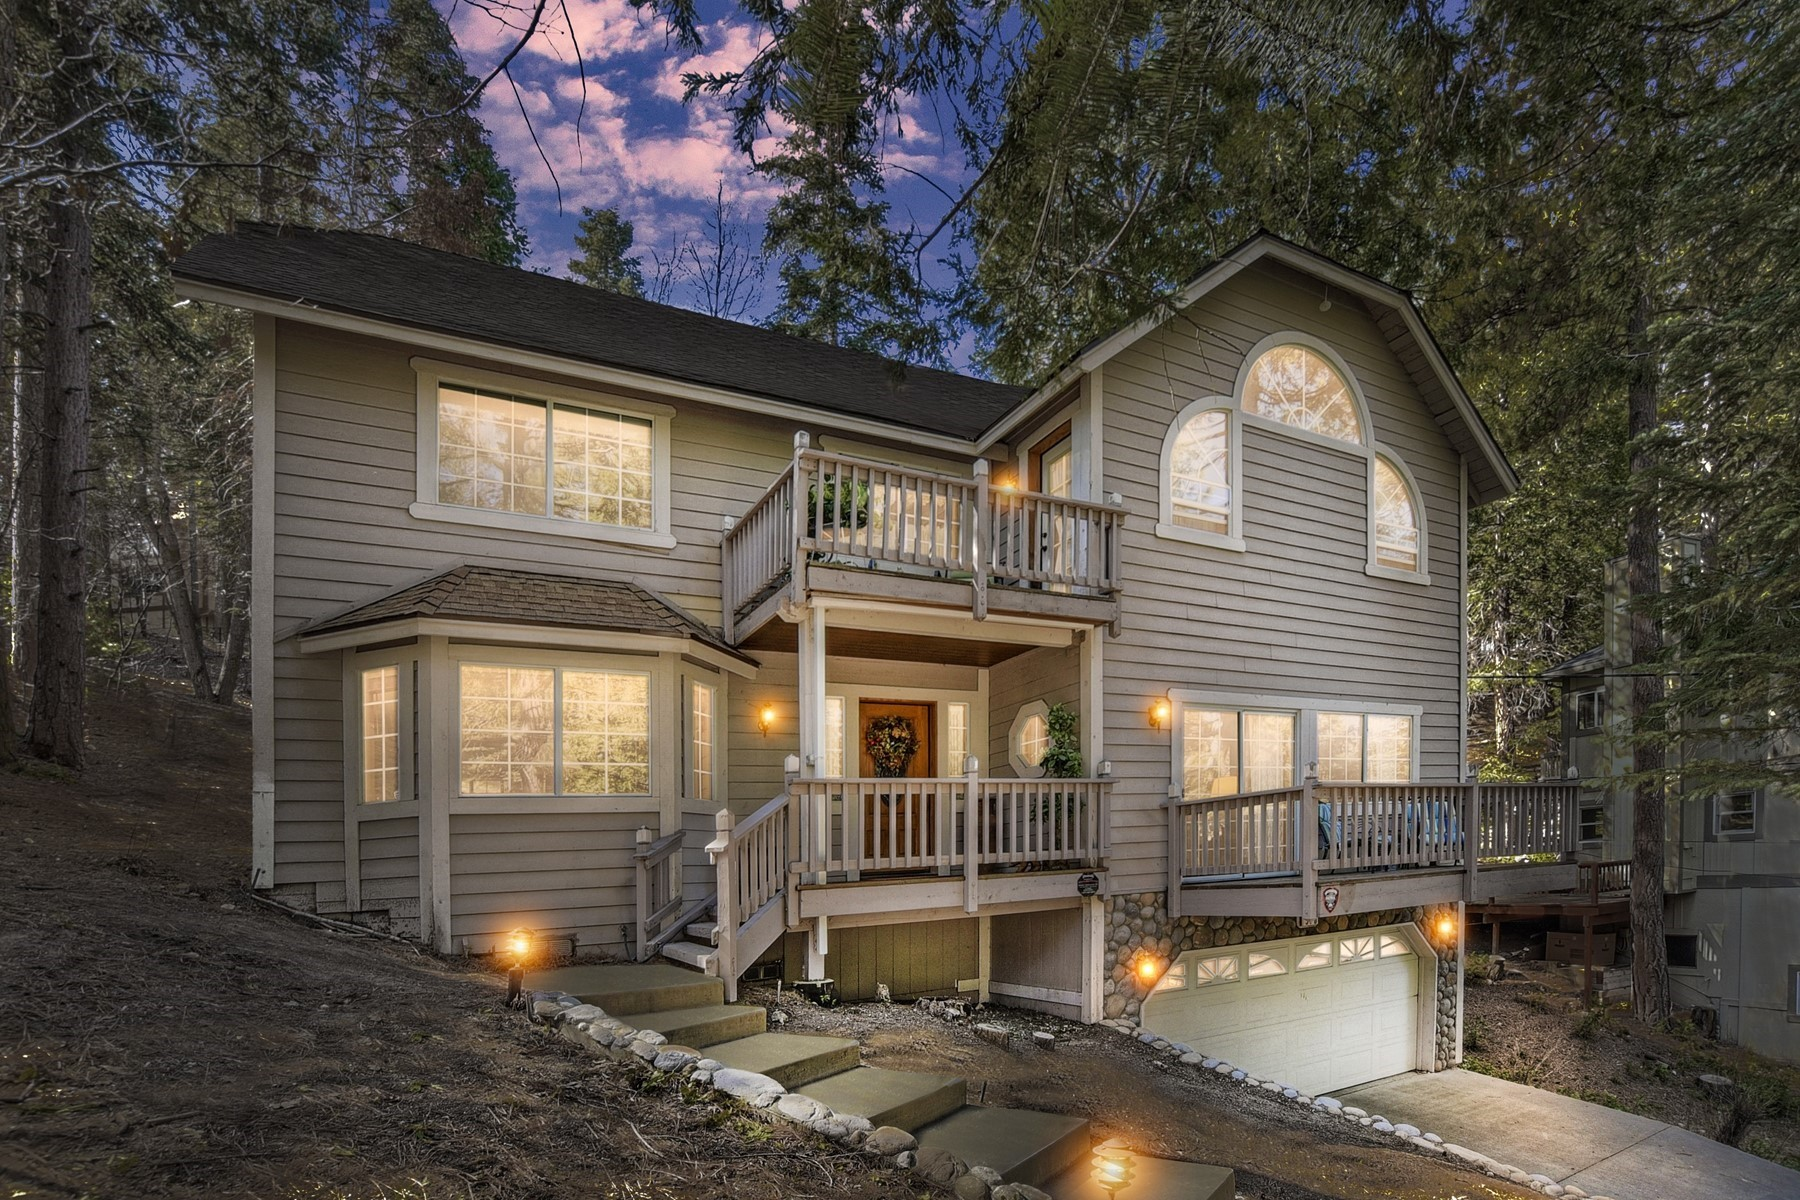 Single Family Homes for Active at 370 Bel Air Drive, Lake Arrowhead CA, 92325 370 Bel Air Drive Lake Arrowhead, California 92325 United States